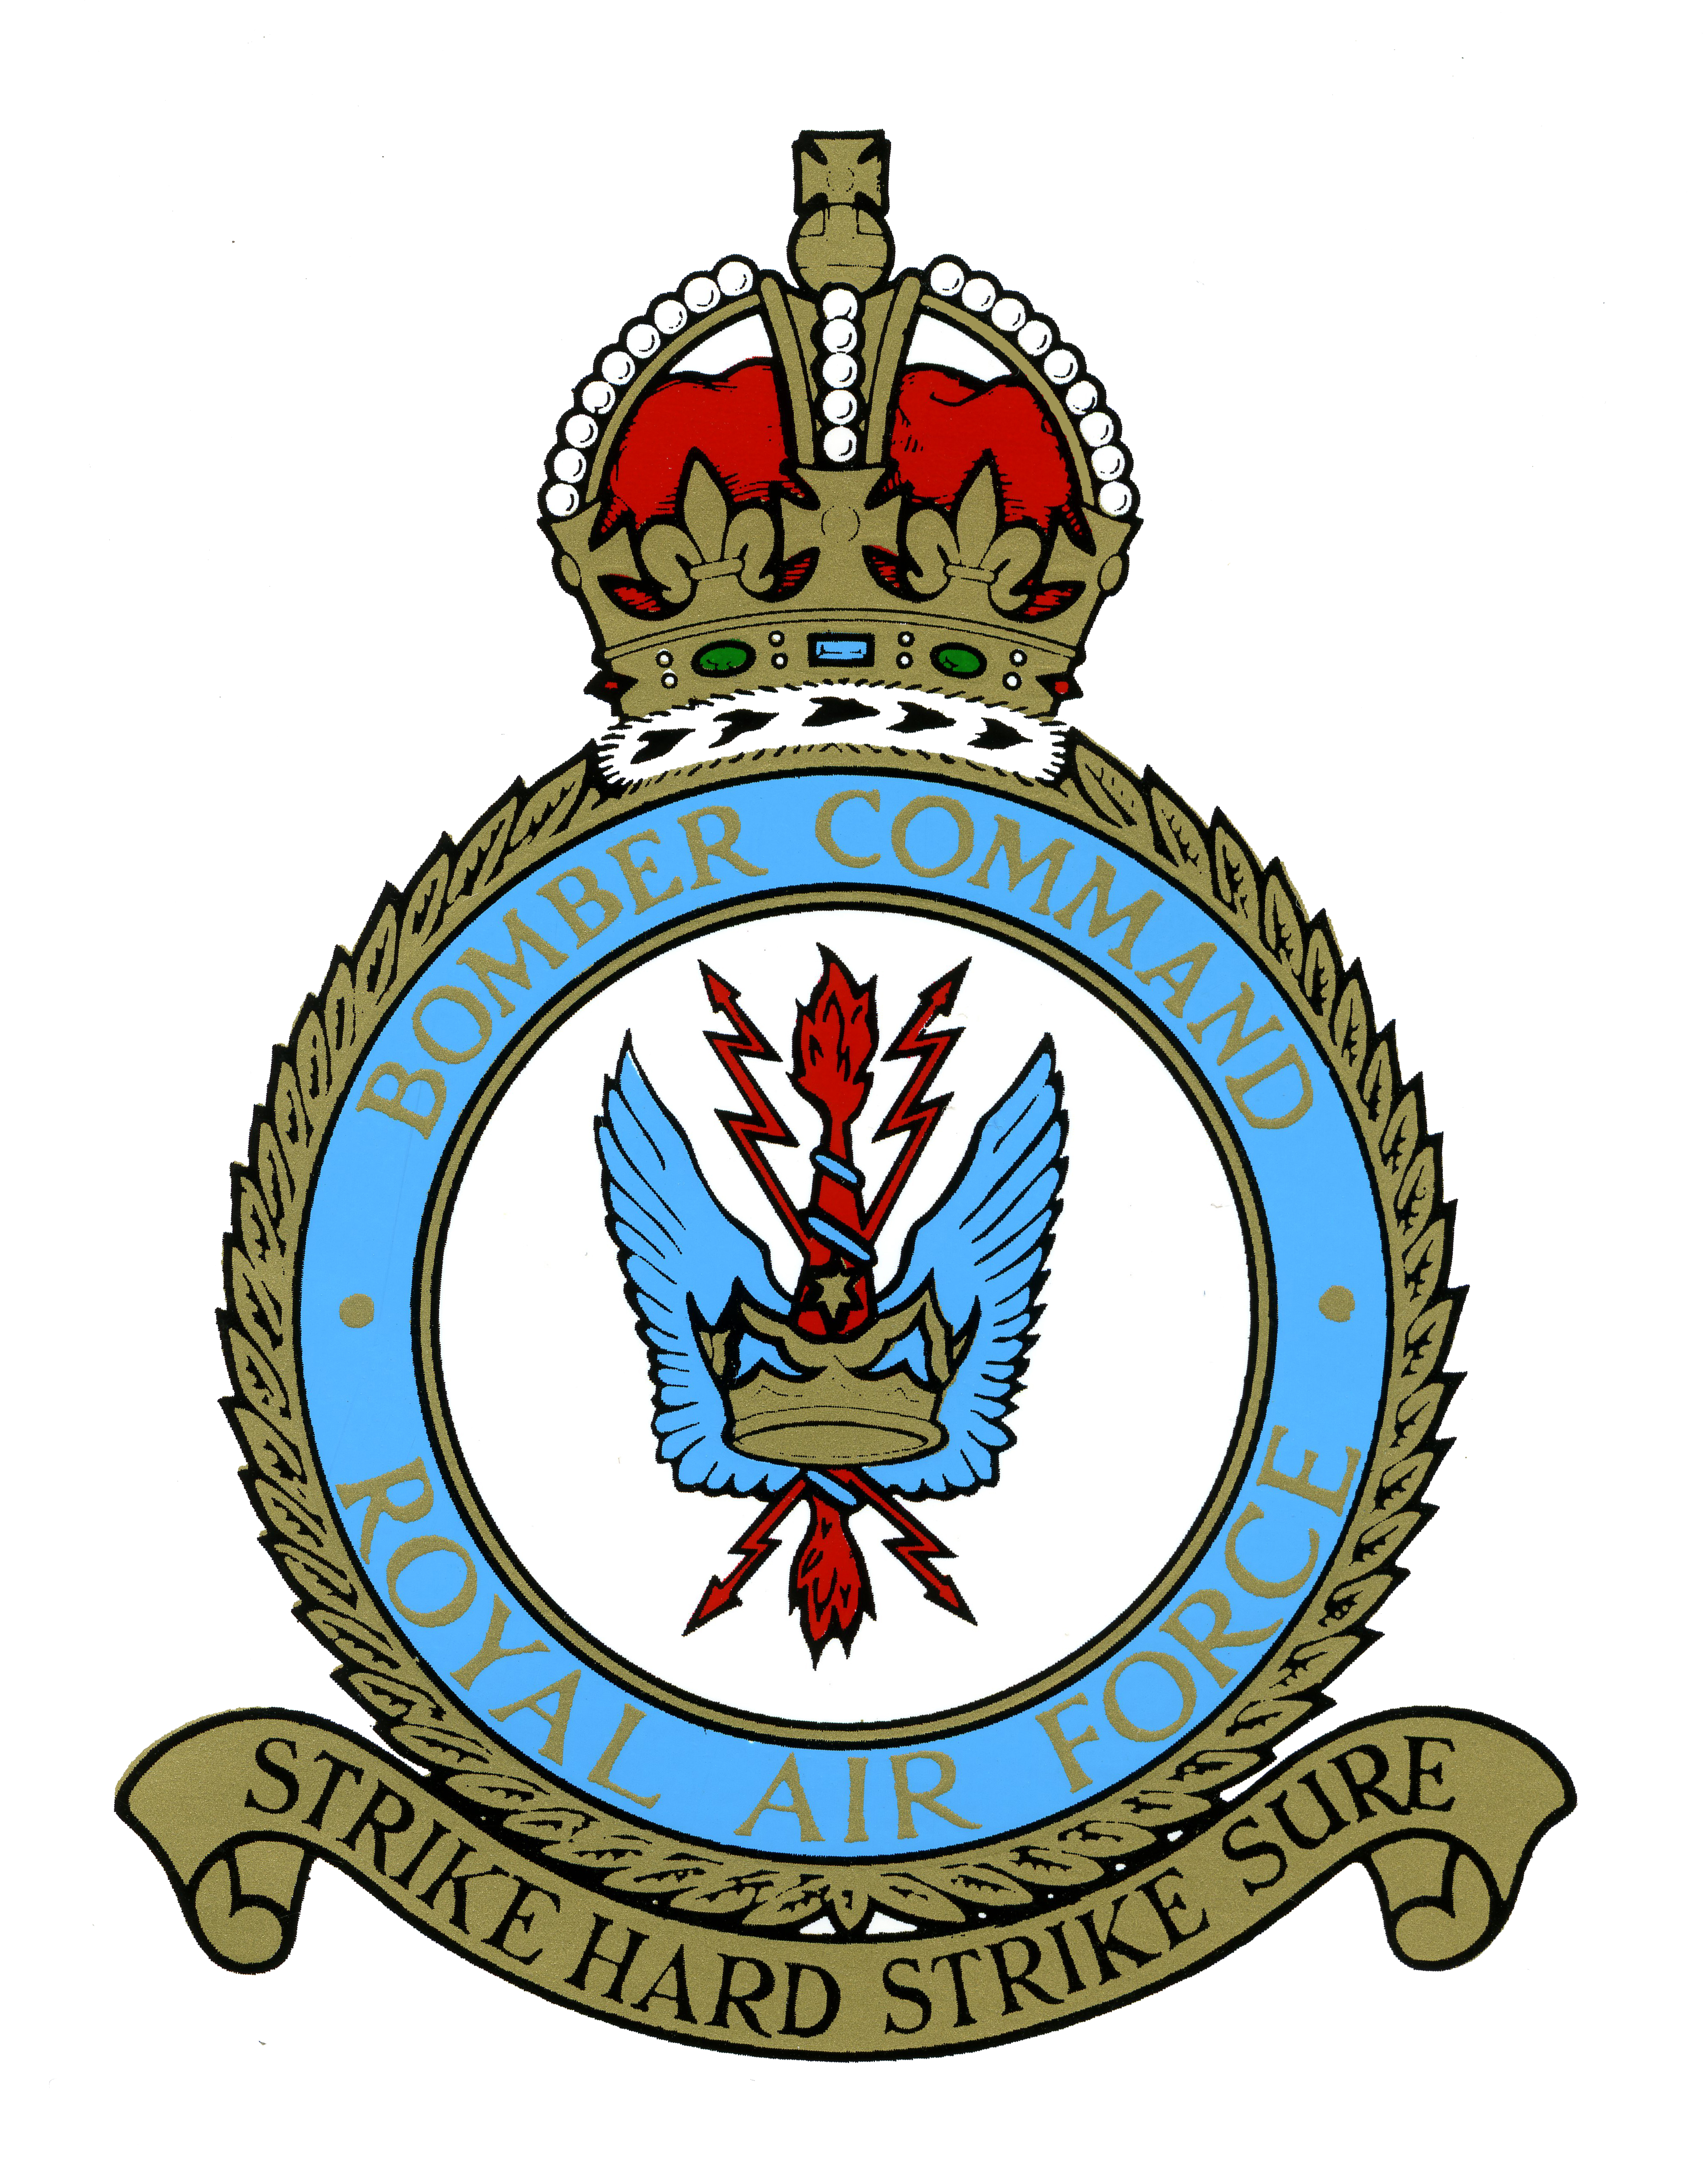 New Zealand Bomber Command Association  Membership is informal and is open to ex  RAF and RNZAF aircrew veterans together with families and friends from throughout New Zealand.